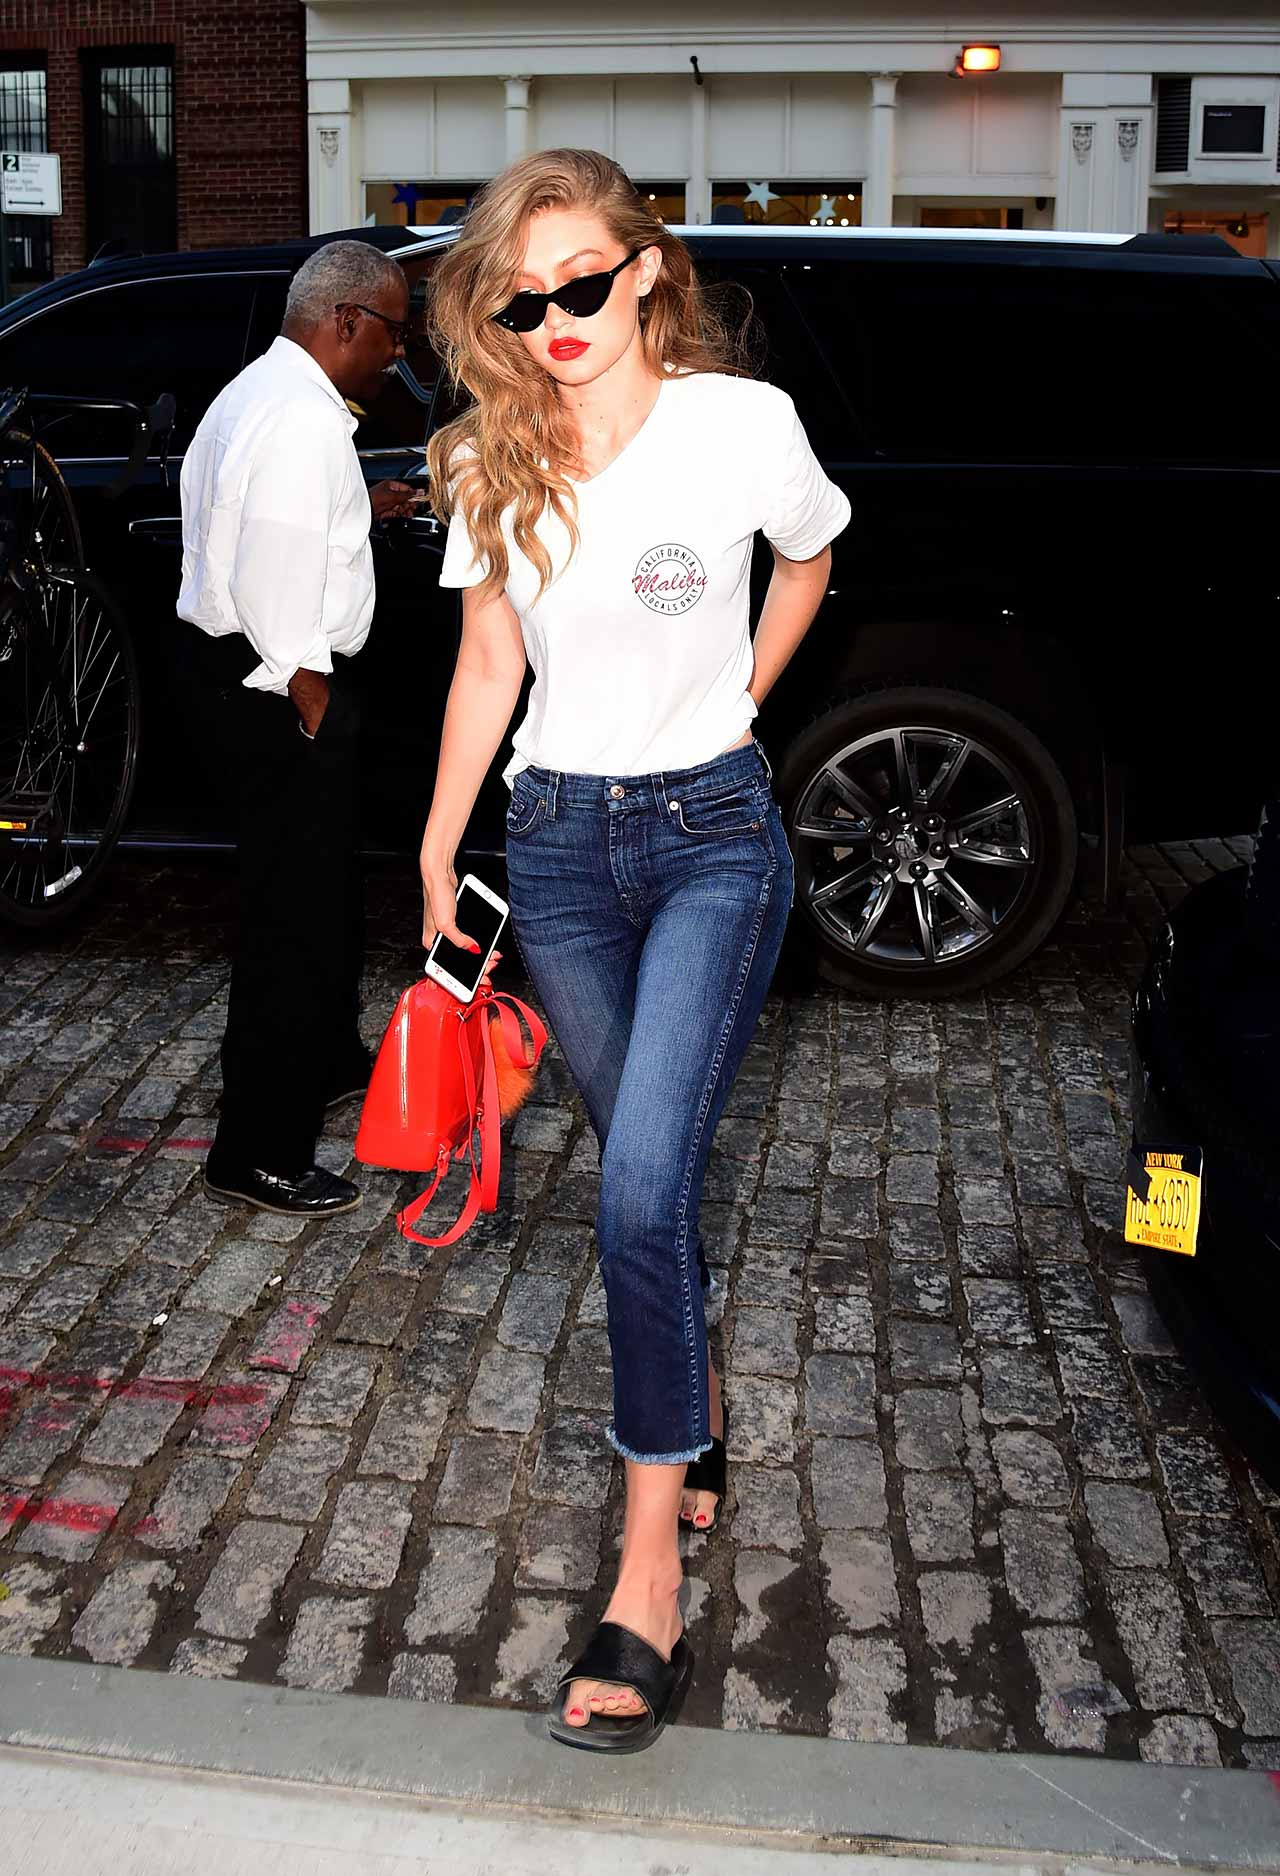 Gigi Hadid Wears 7 For All Mankind Raw Hem Crop Jeans | The Jeans Blog